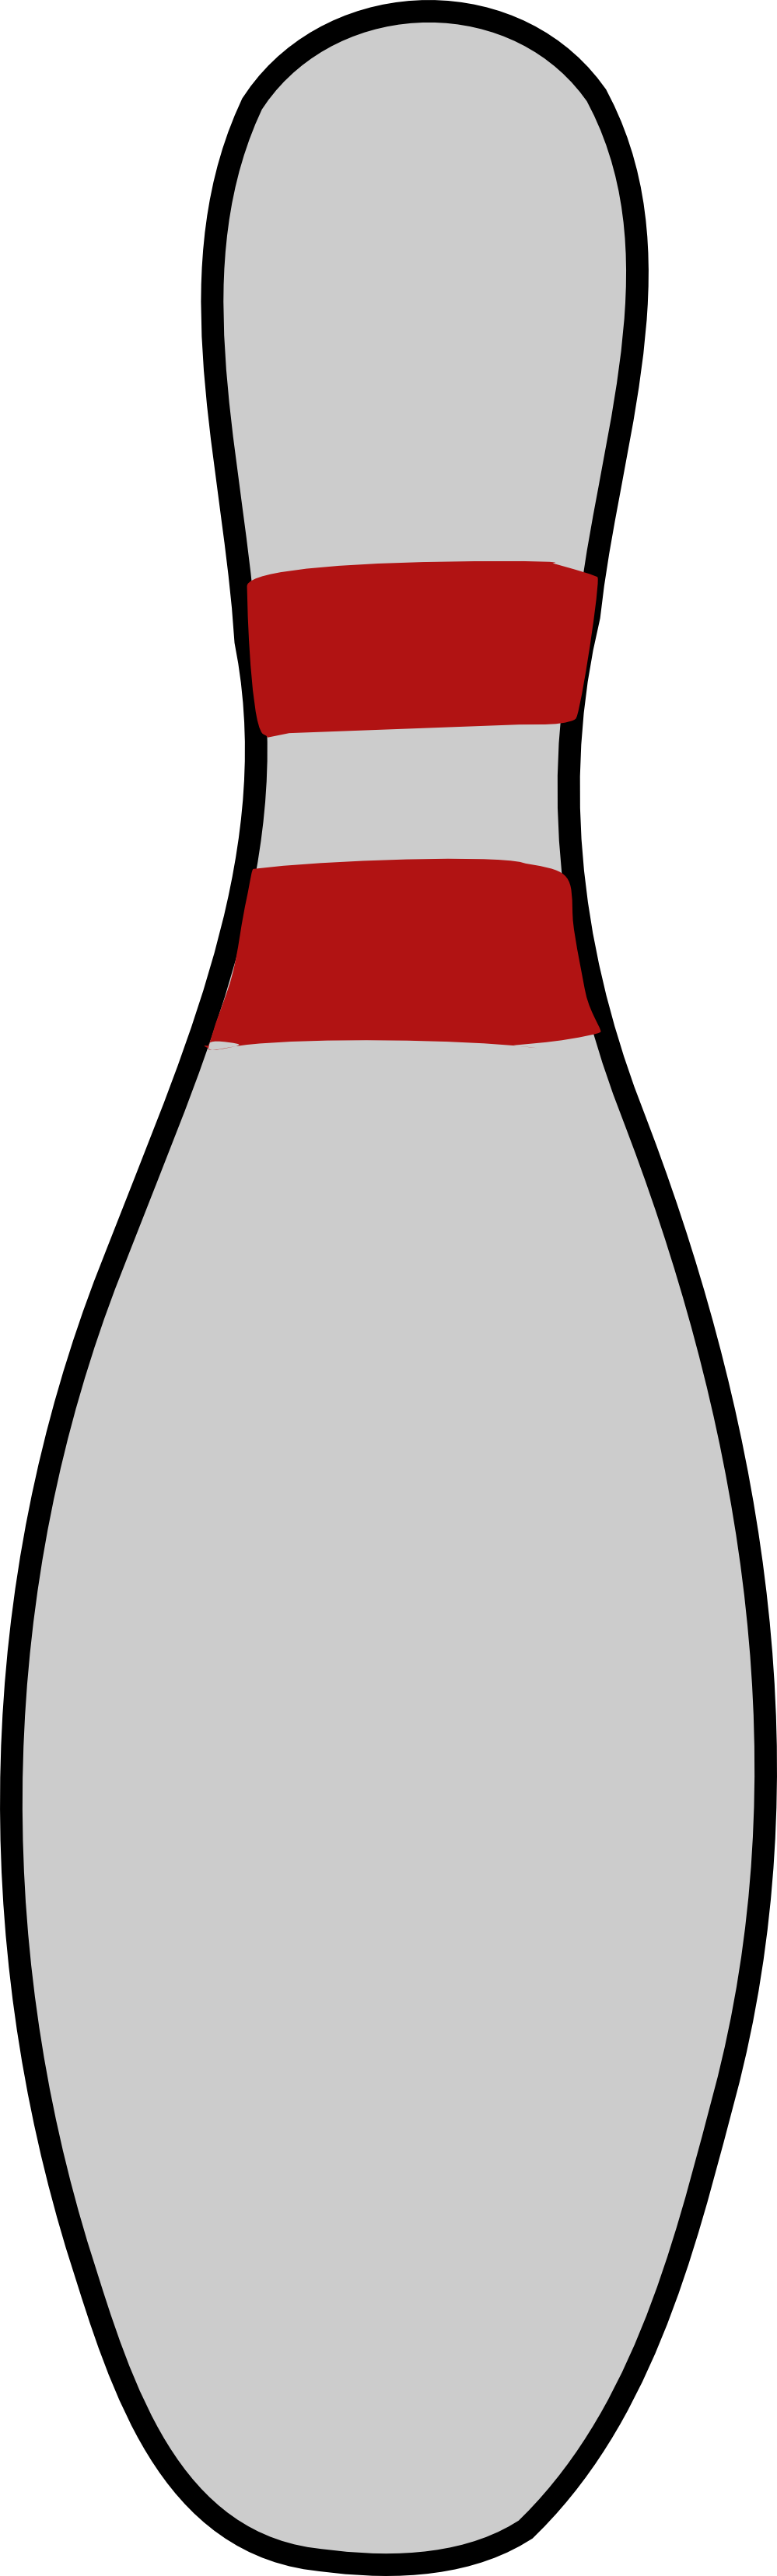 Clip Art Bowling Pin Coloring Page bowling pin coloring page clipart best